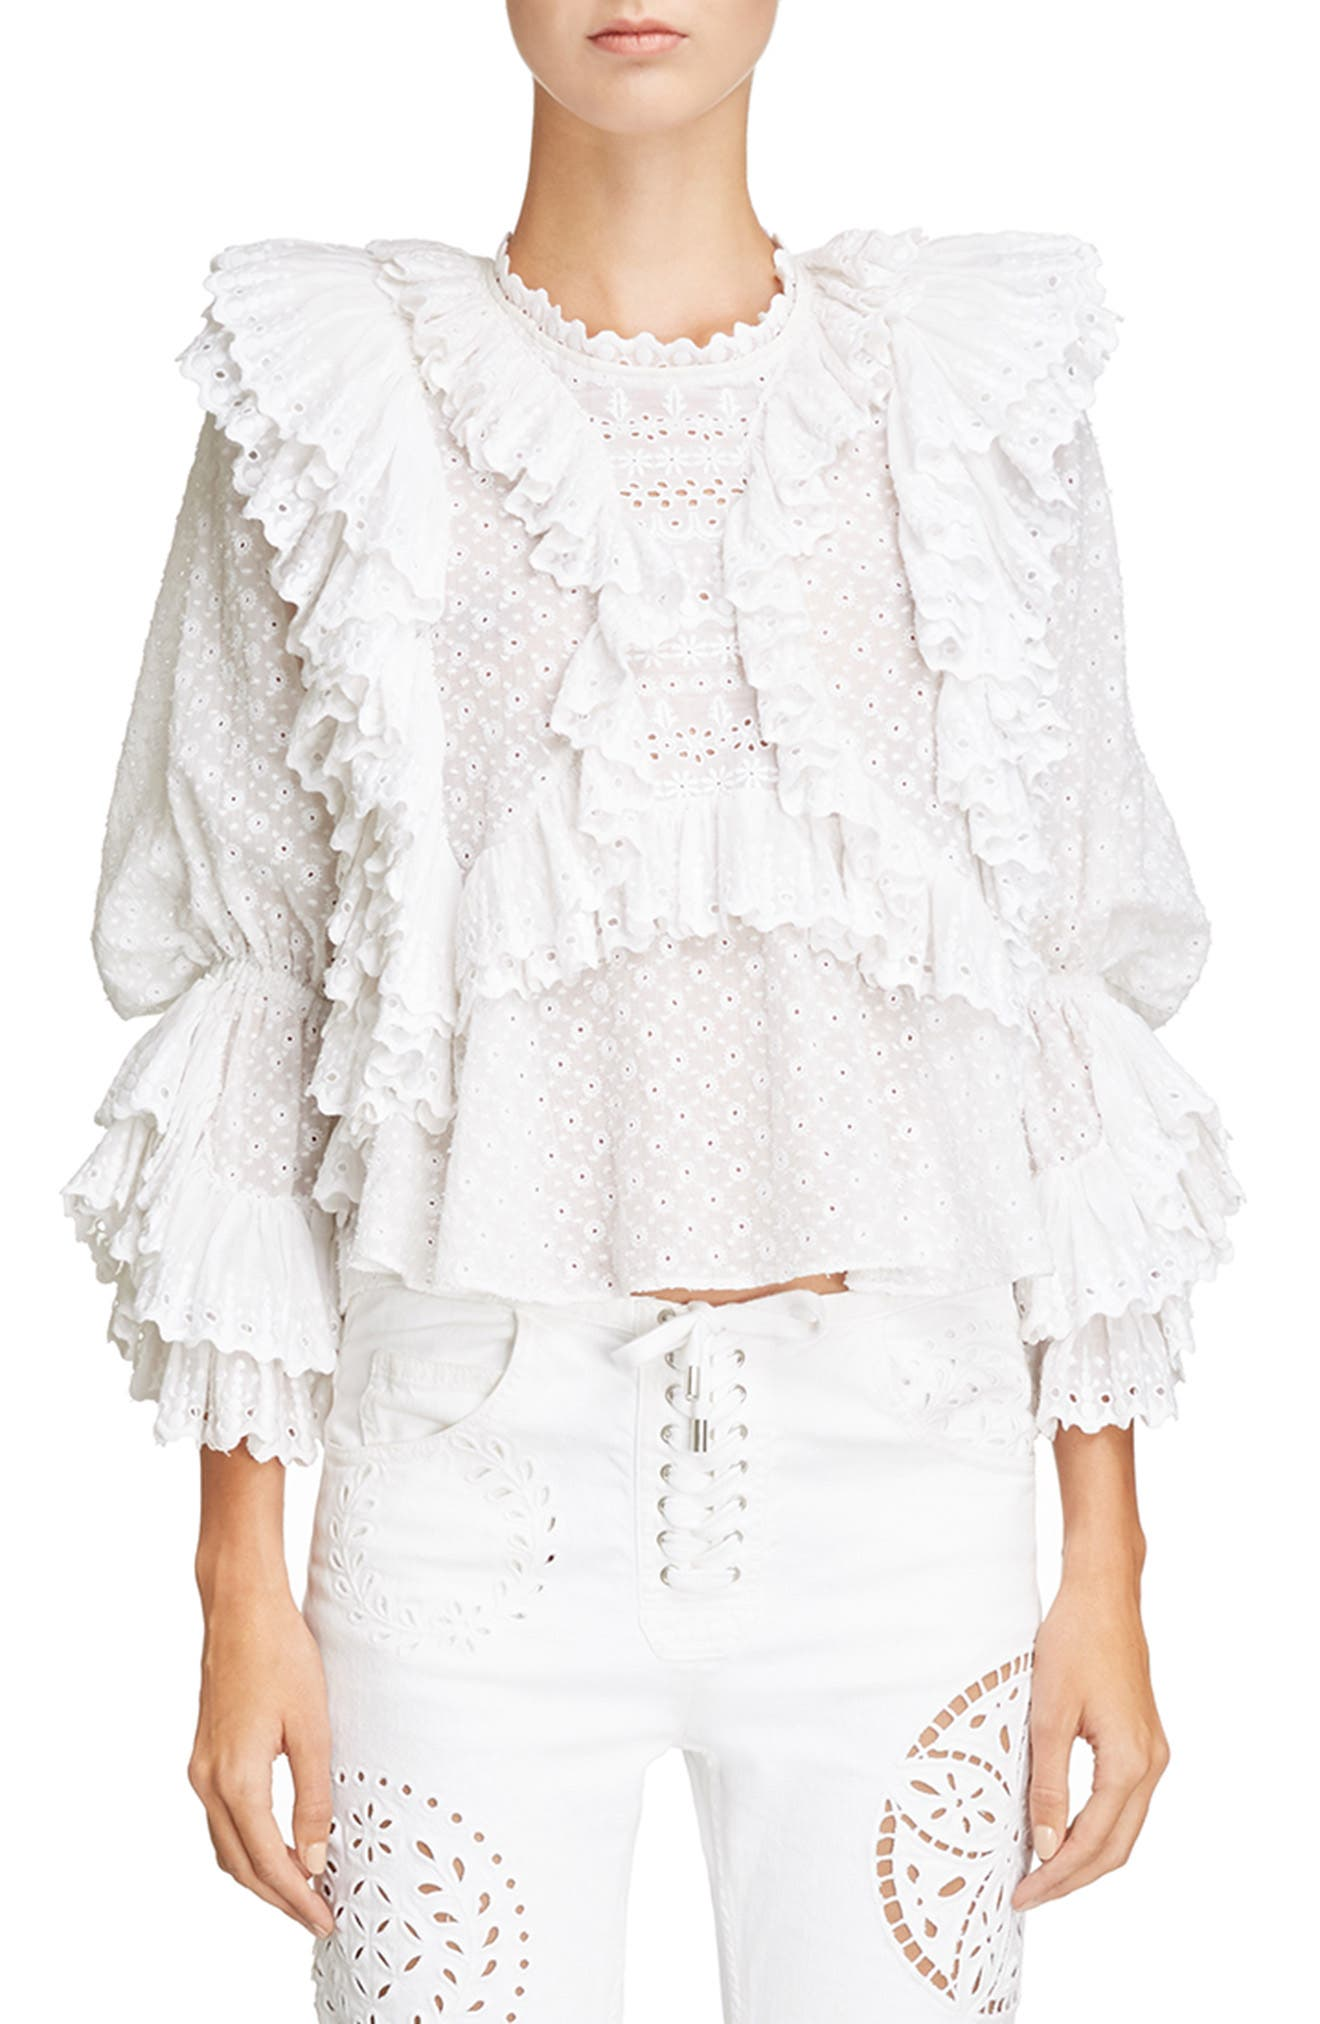 Isabel Marant Ruffle Detail Broderie Anglaise Top